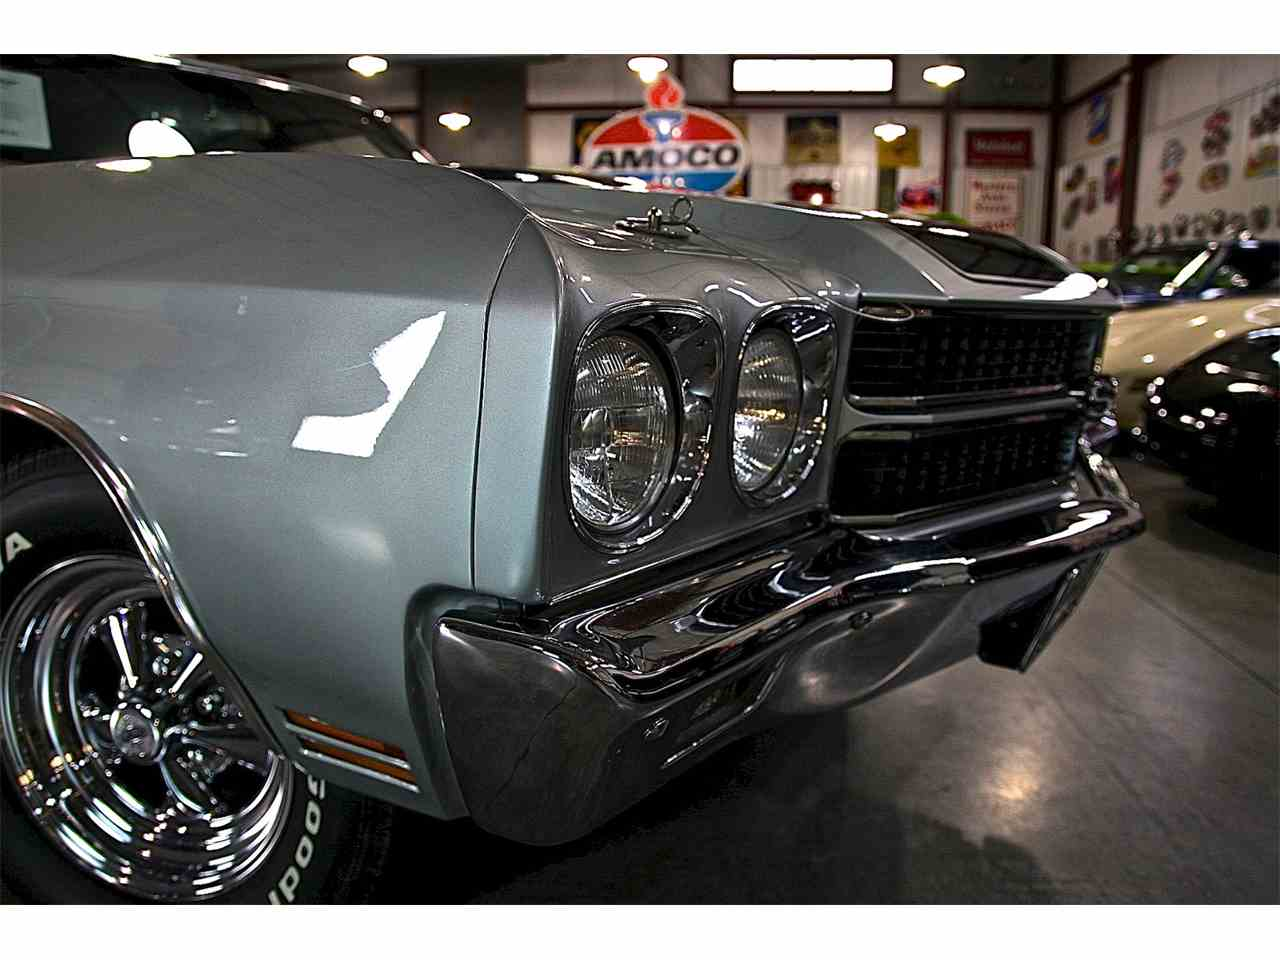 Large Picture of '70 Chevrolet Chevelle SS located in Fort Lauderdale Florida Offered by a Private Seller - L41W